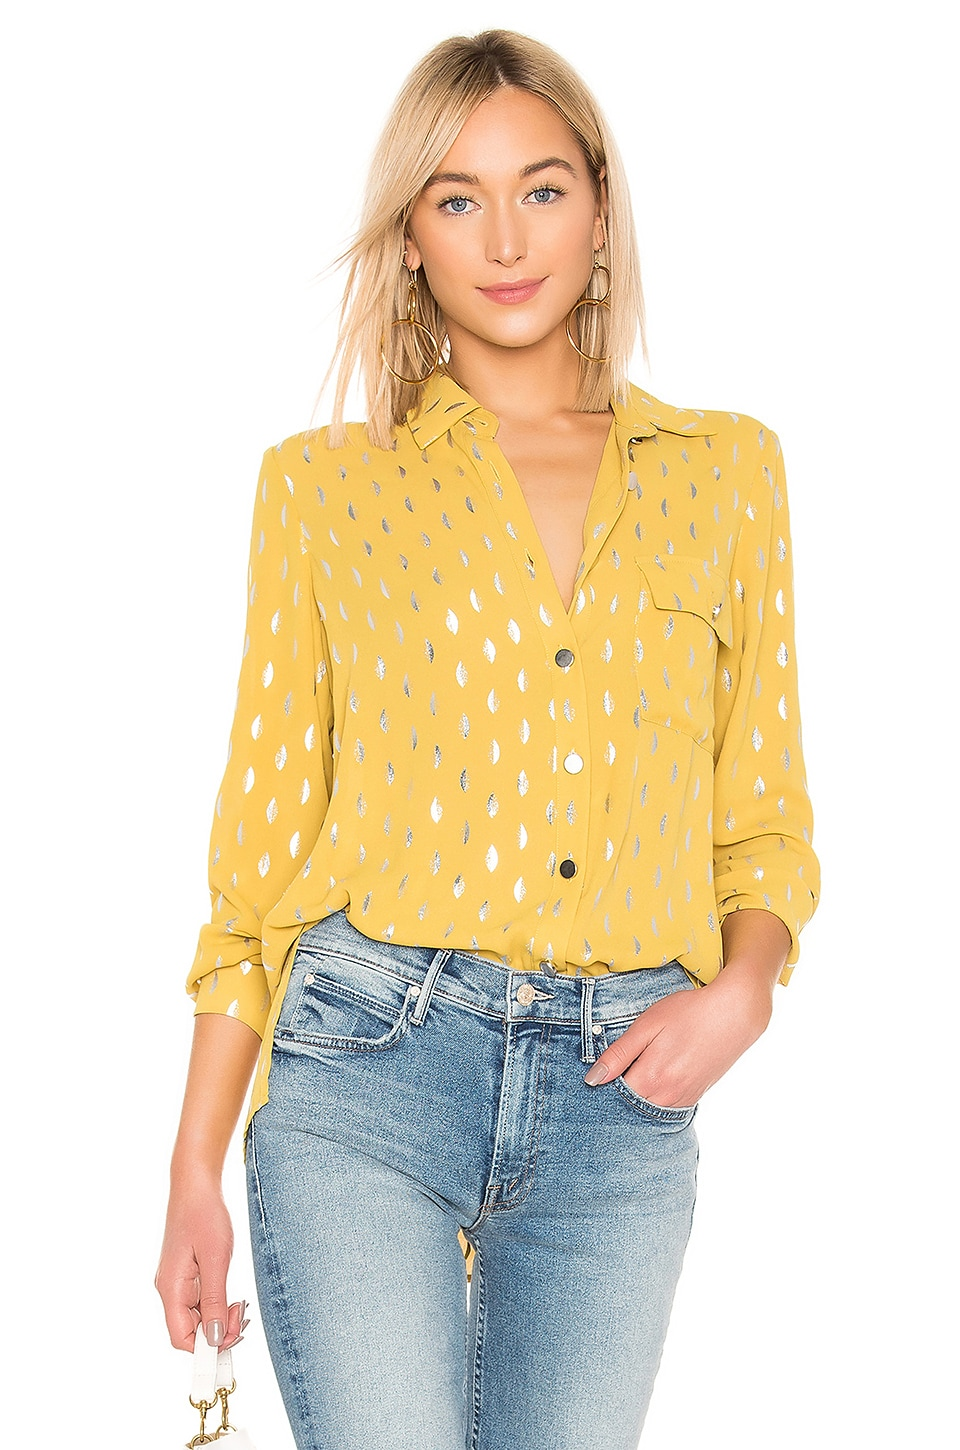 House of Harlow 1960 X REVOLVE Devina Button Down in Antique Yellow